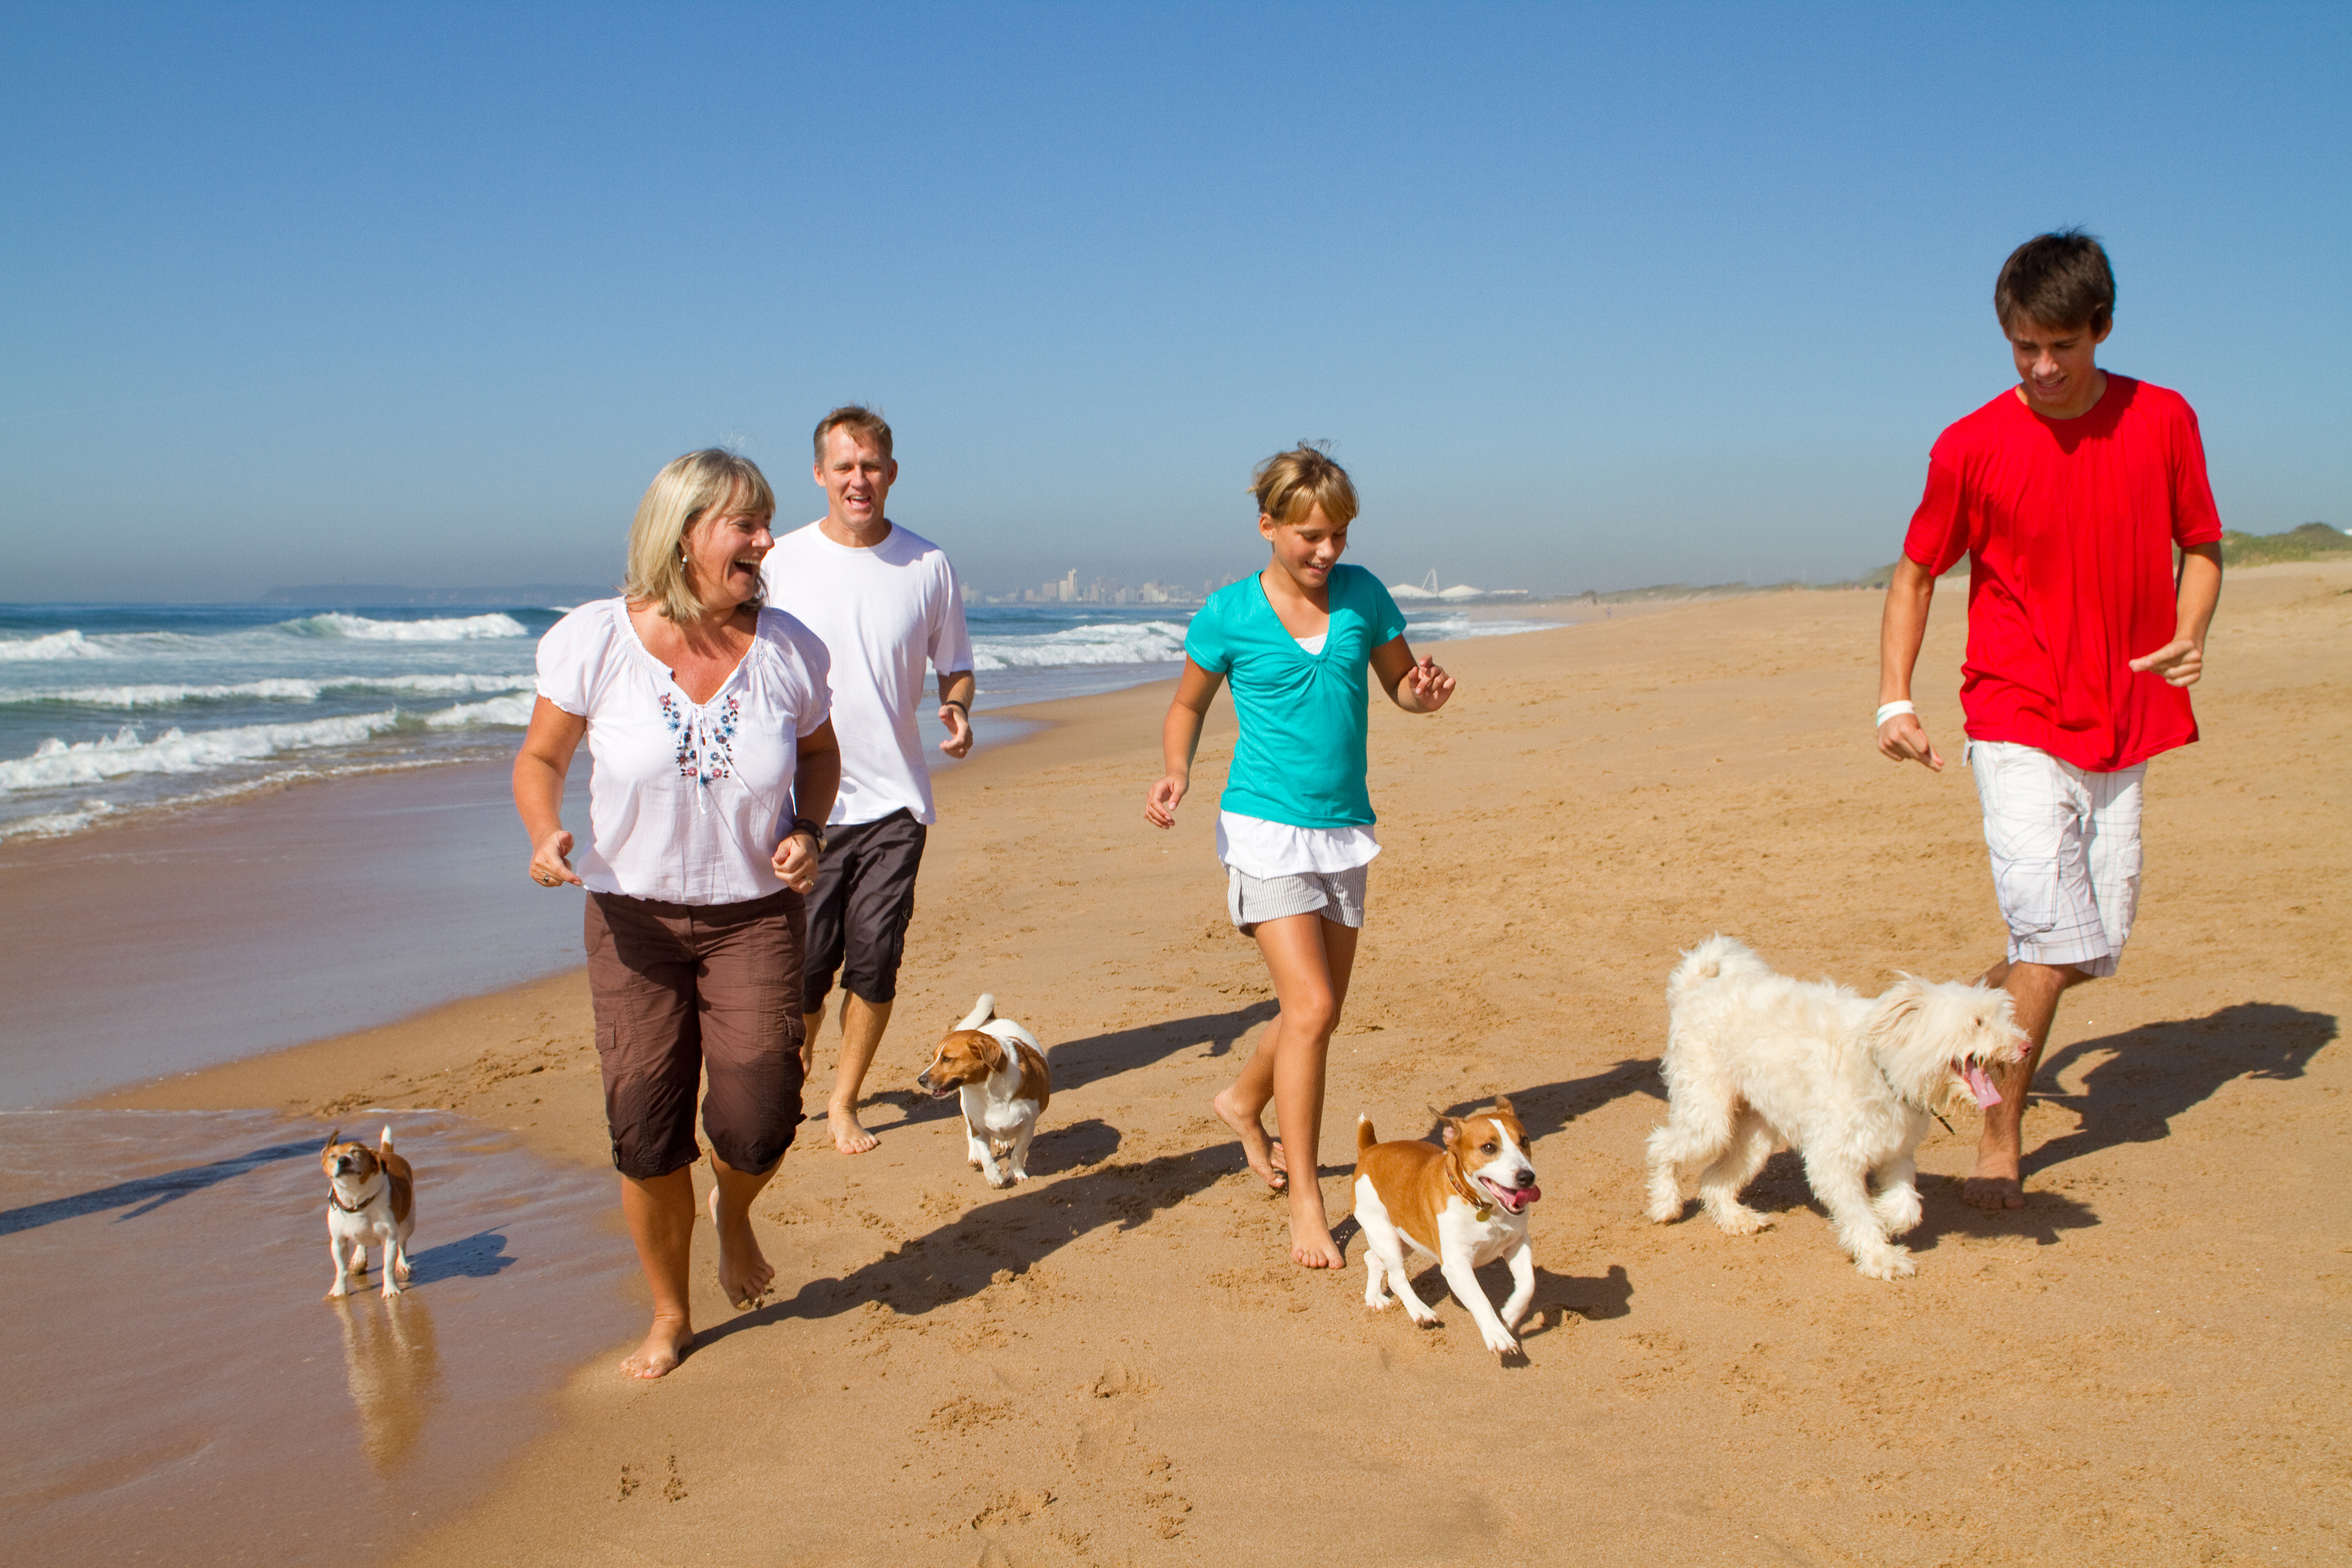 Family of four with their four dogs running on the beach